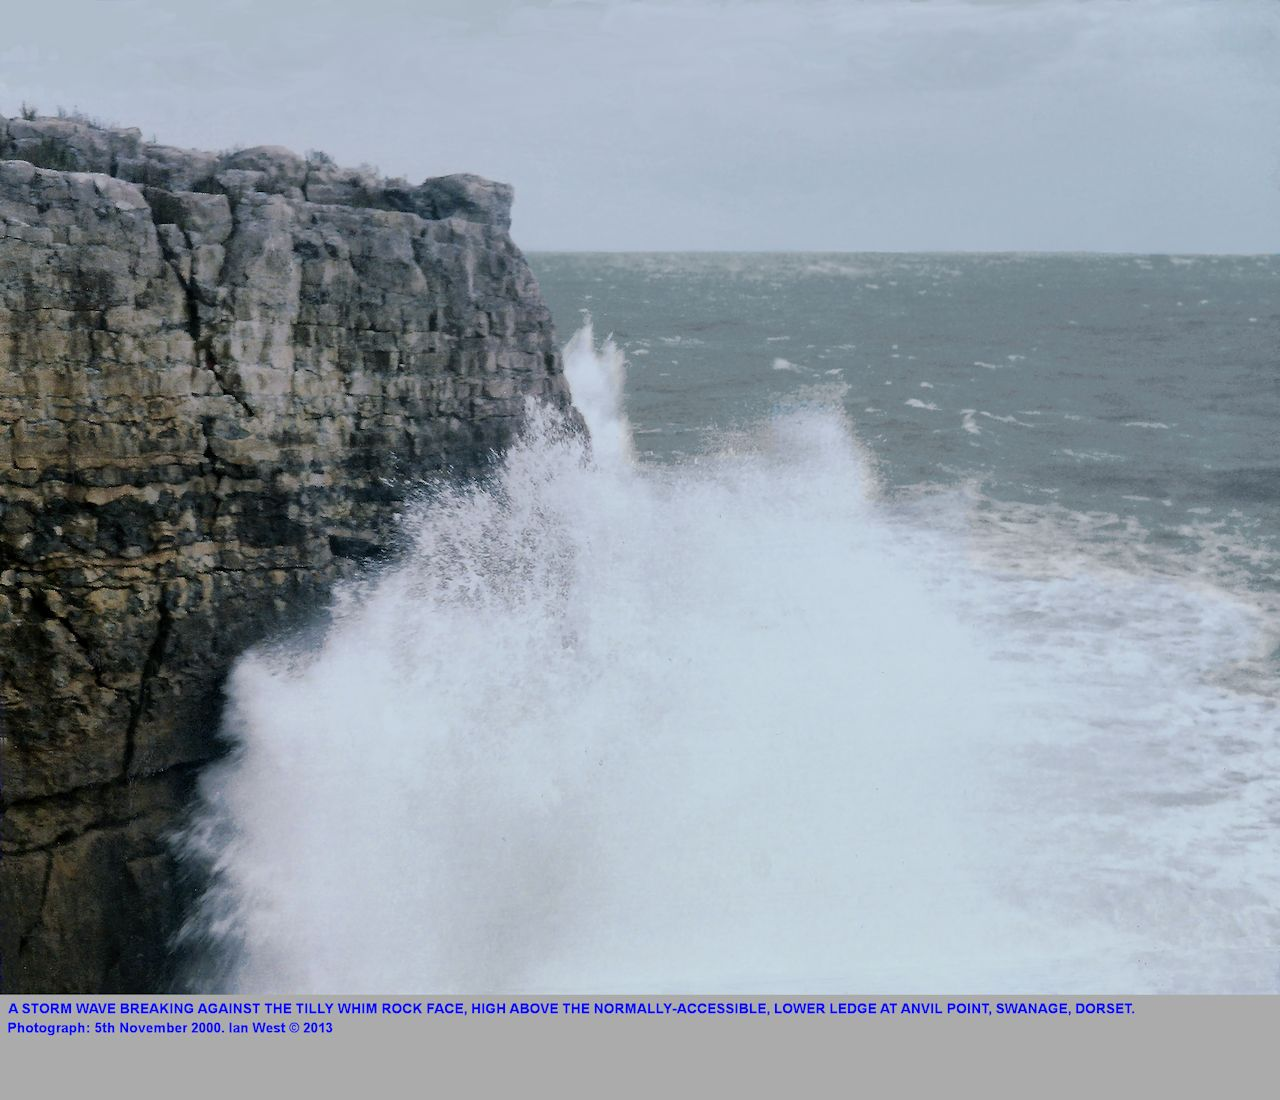 A wave breaking against the wall of Portland Chert Member below the Tilly Whim quarrying ledge, and as seen from the Anvil Point, valley mouth, near Swanage, Dorset, 5th November 2000